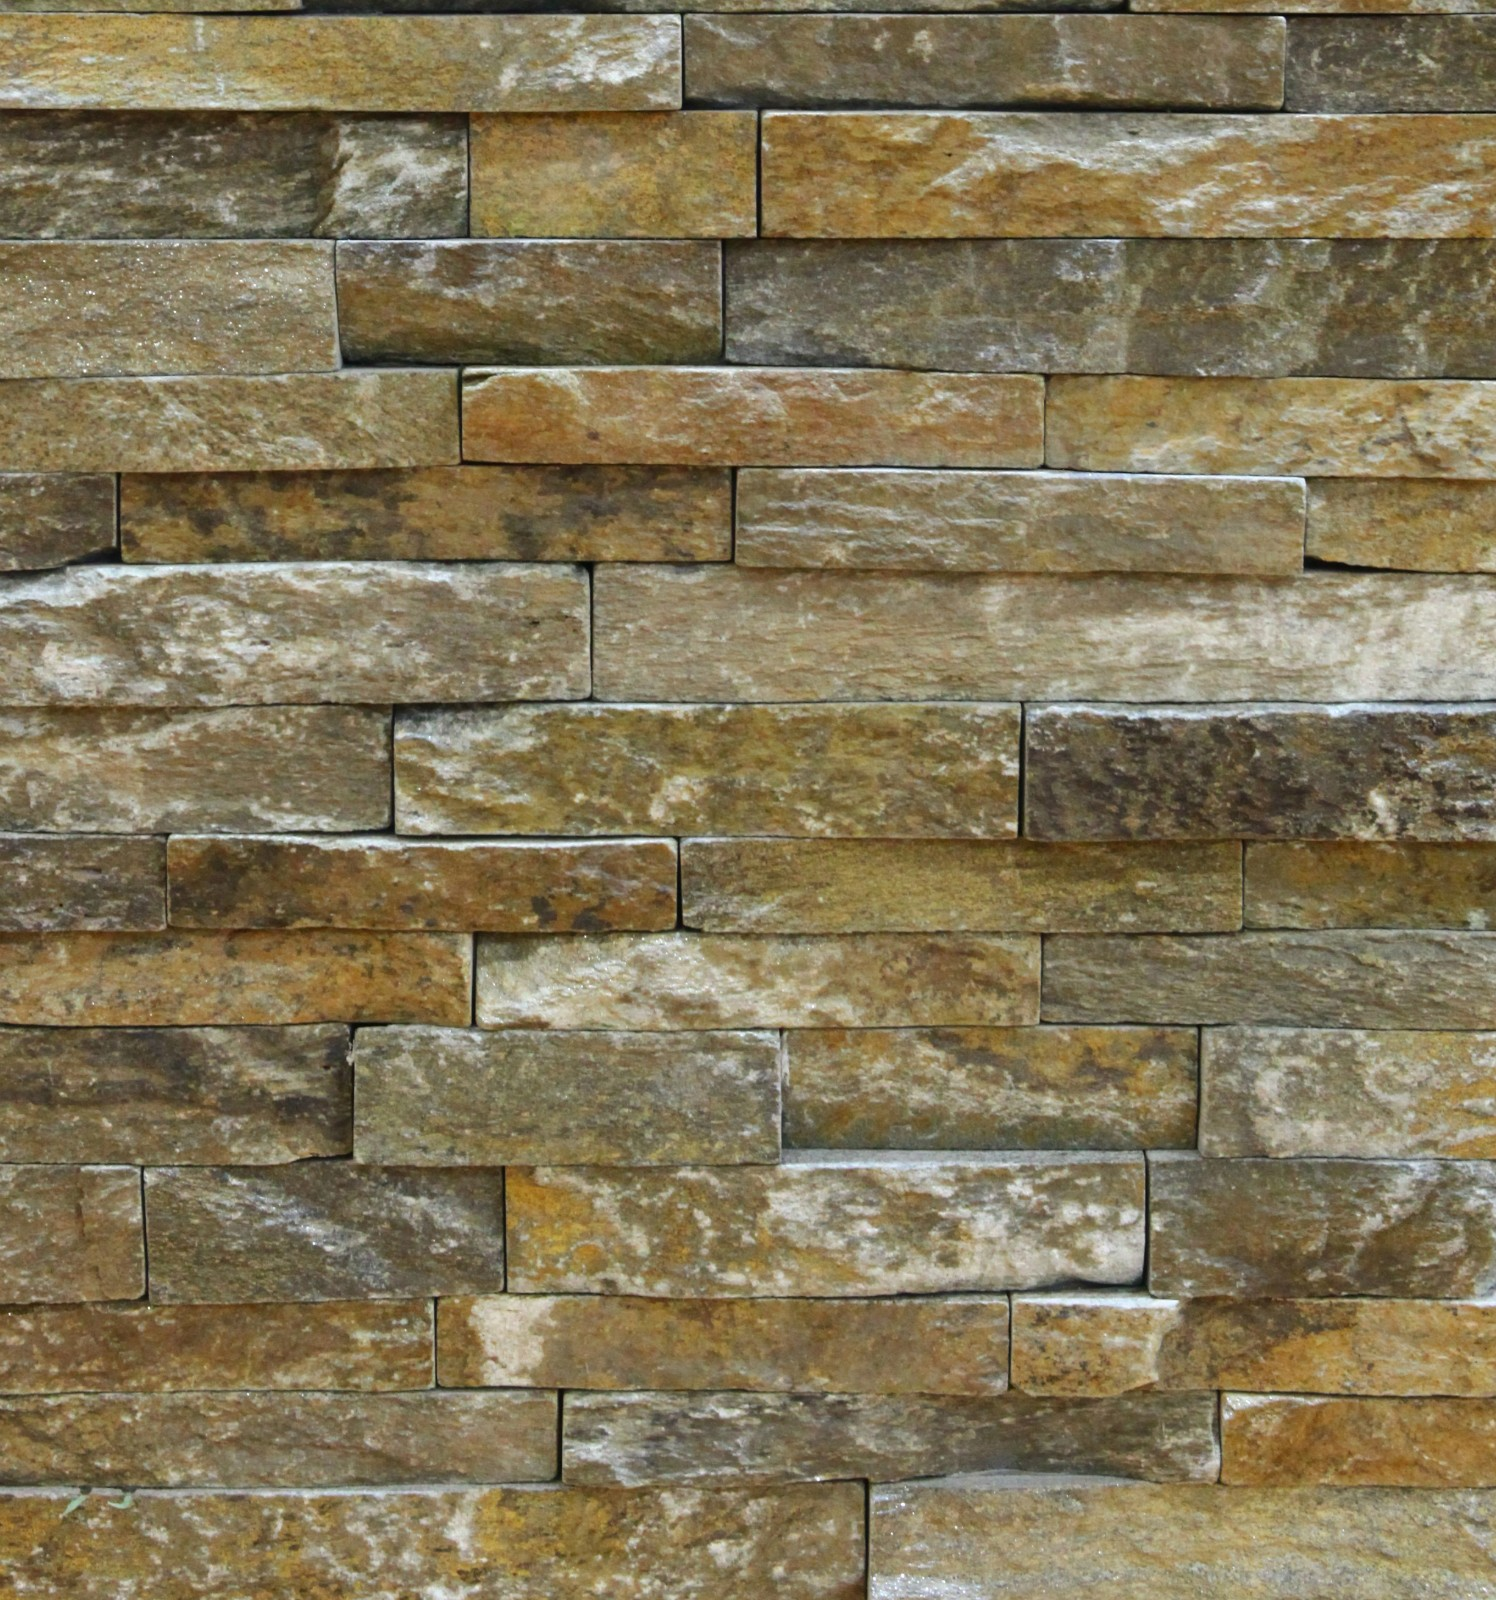 exterior stone wall cladding,stone cladding anchors,stone cladding anchor bolt,wall cladding stone panel,stone cladding wall,stone exterior wall cladding